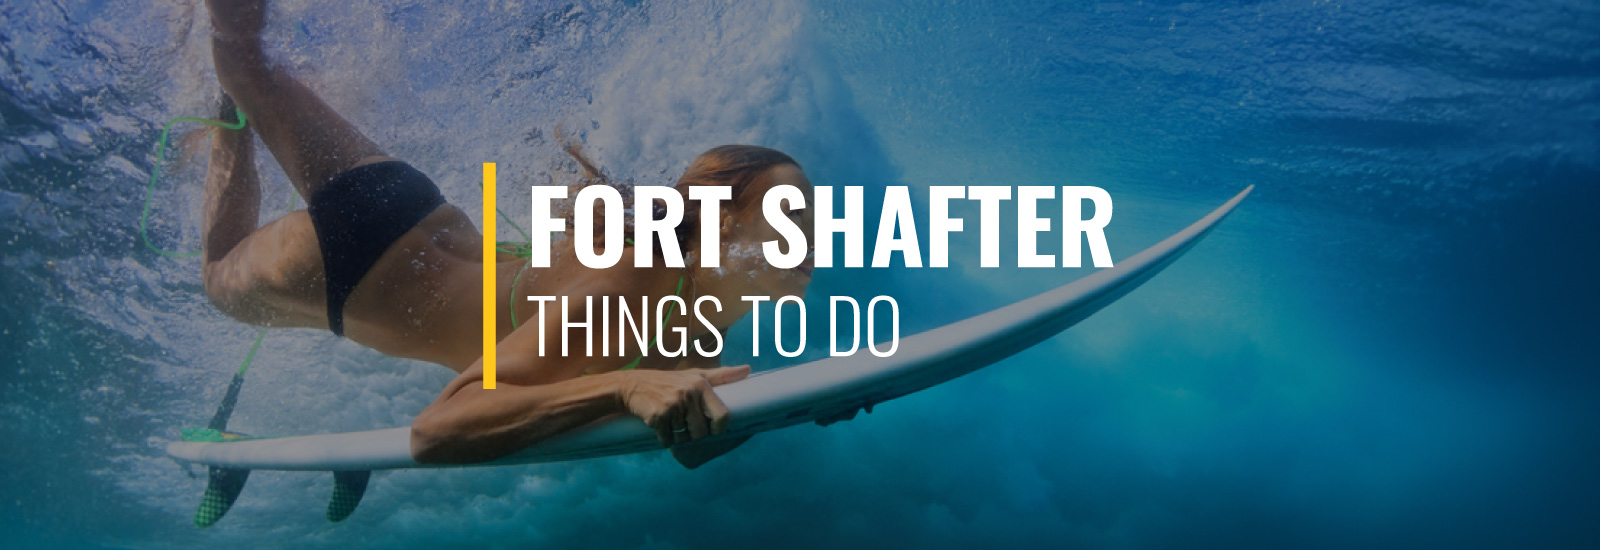 Things to Do Near Fort Shafter